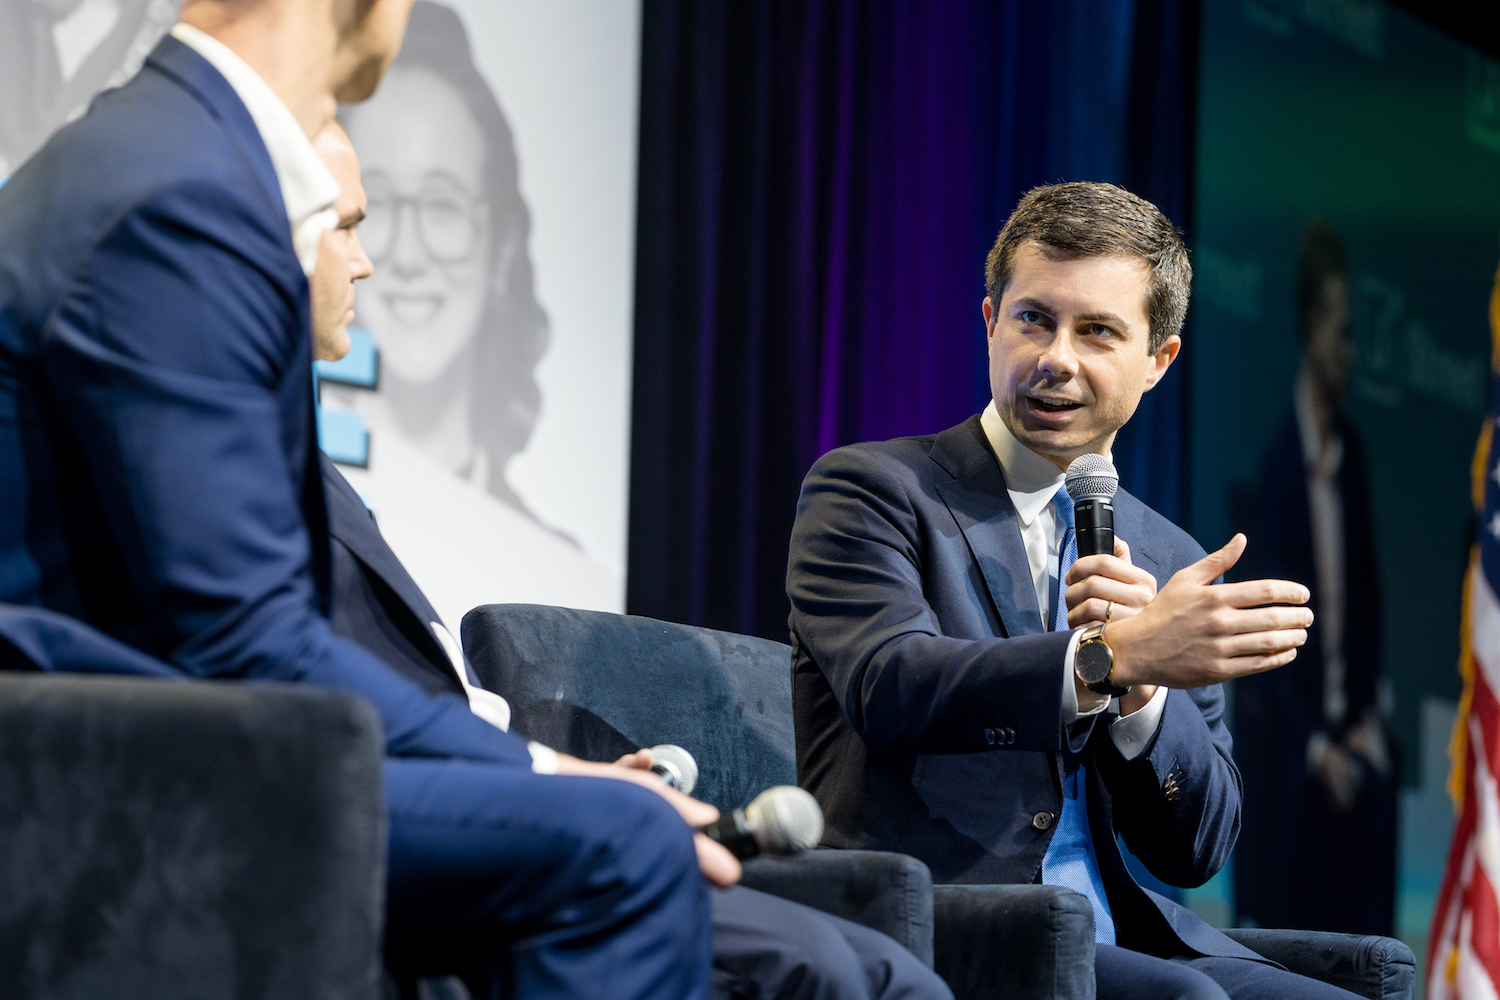 Democratic presidential candidate and South Bend Mayor Pete Buttigieg speaking at J Street Conference, October 28, 2019. (J Street)